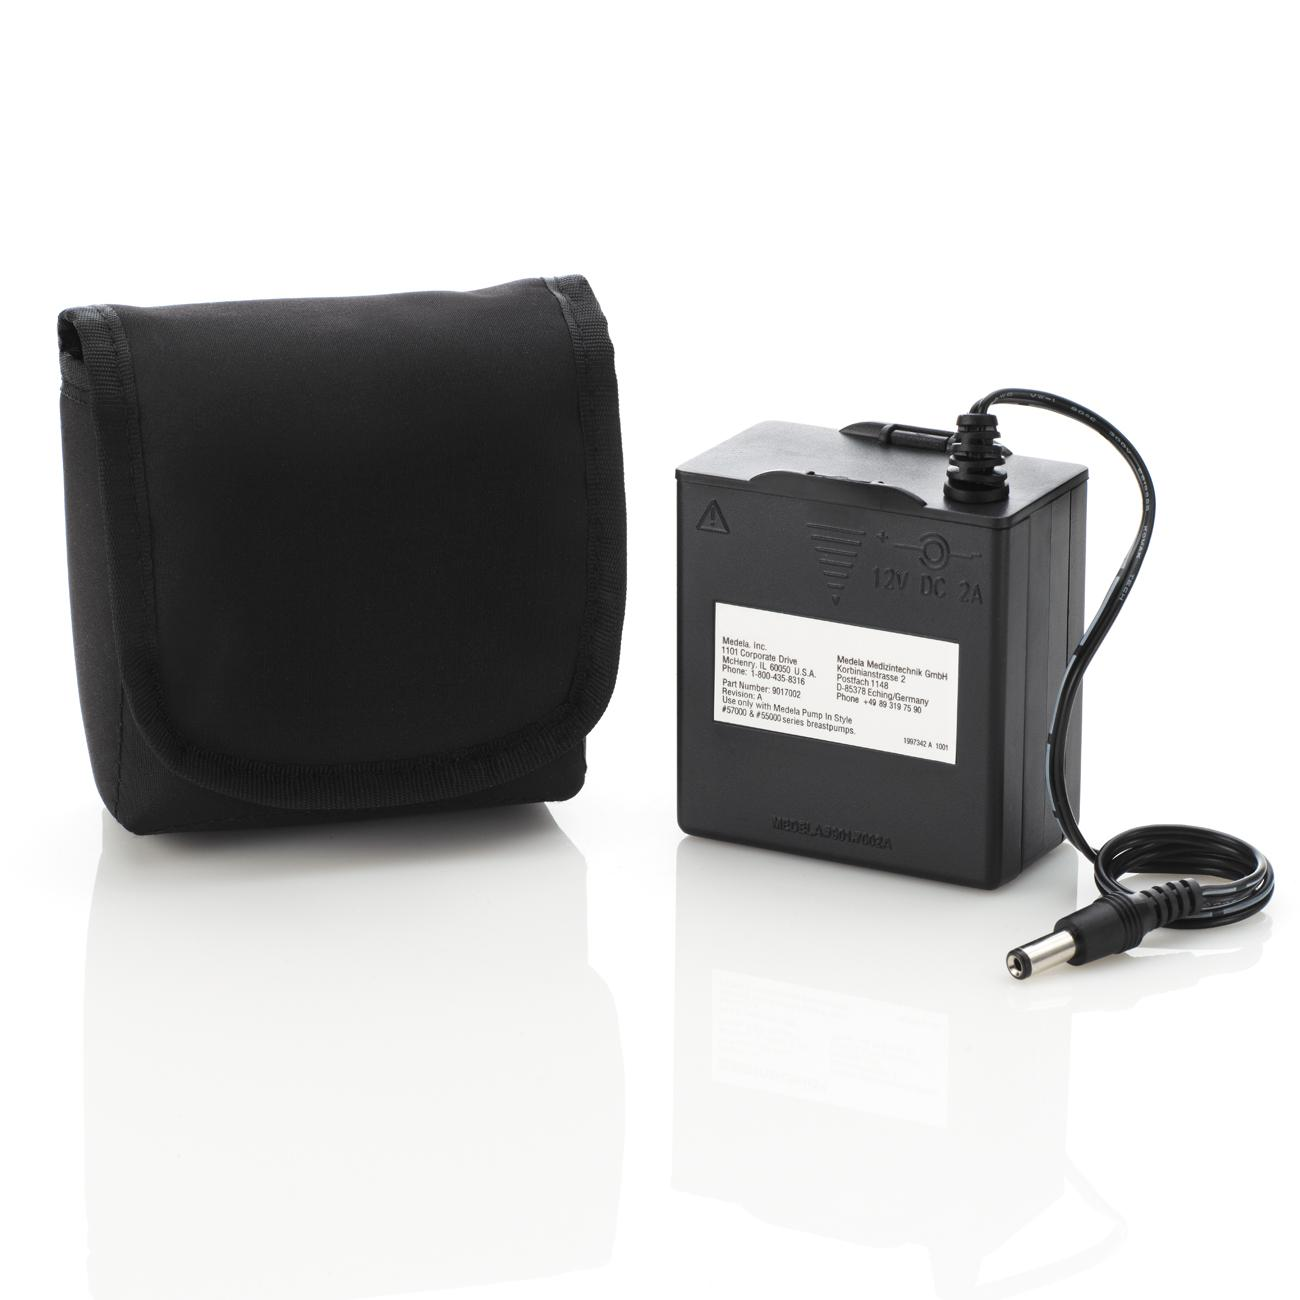 Amazon.com : Medela Battery Pack for 9 Volt Pump in Style Advanced